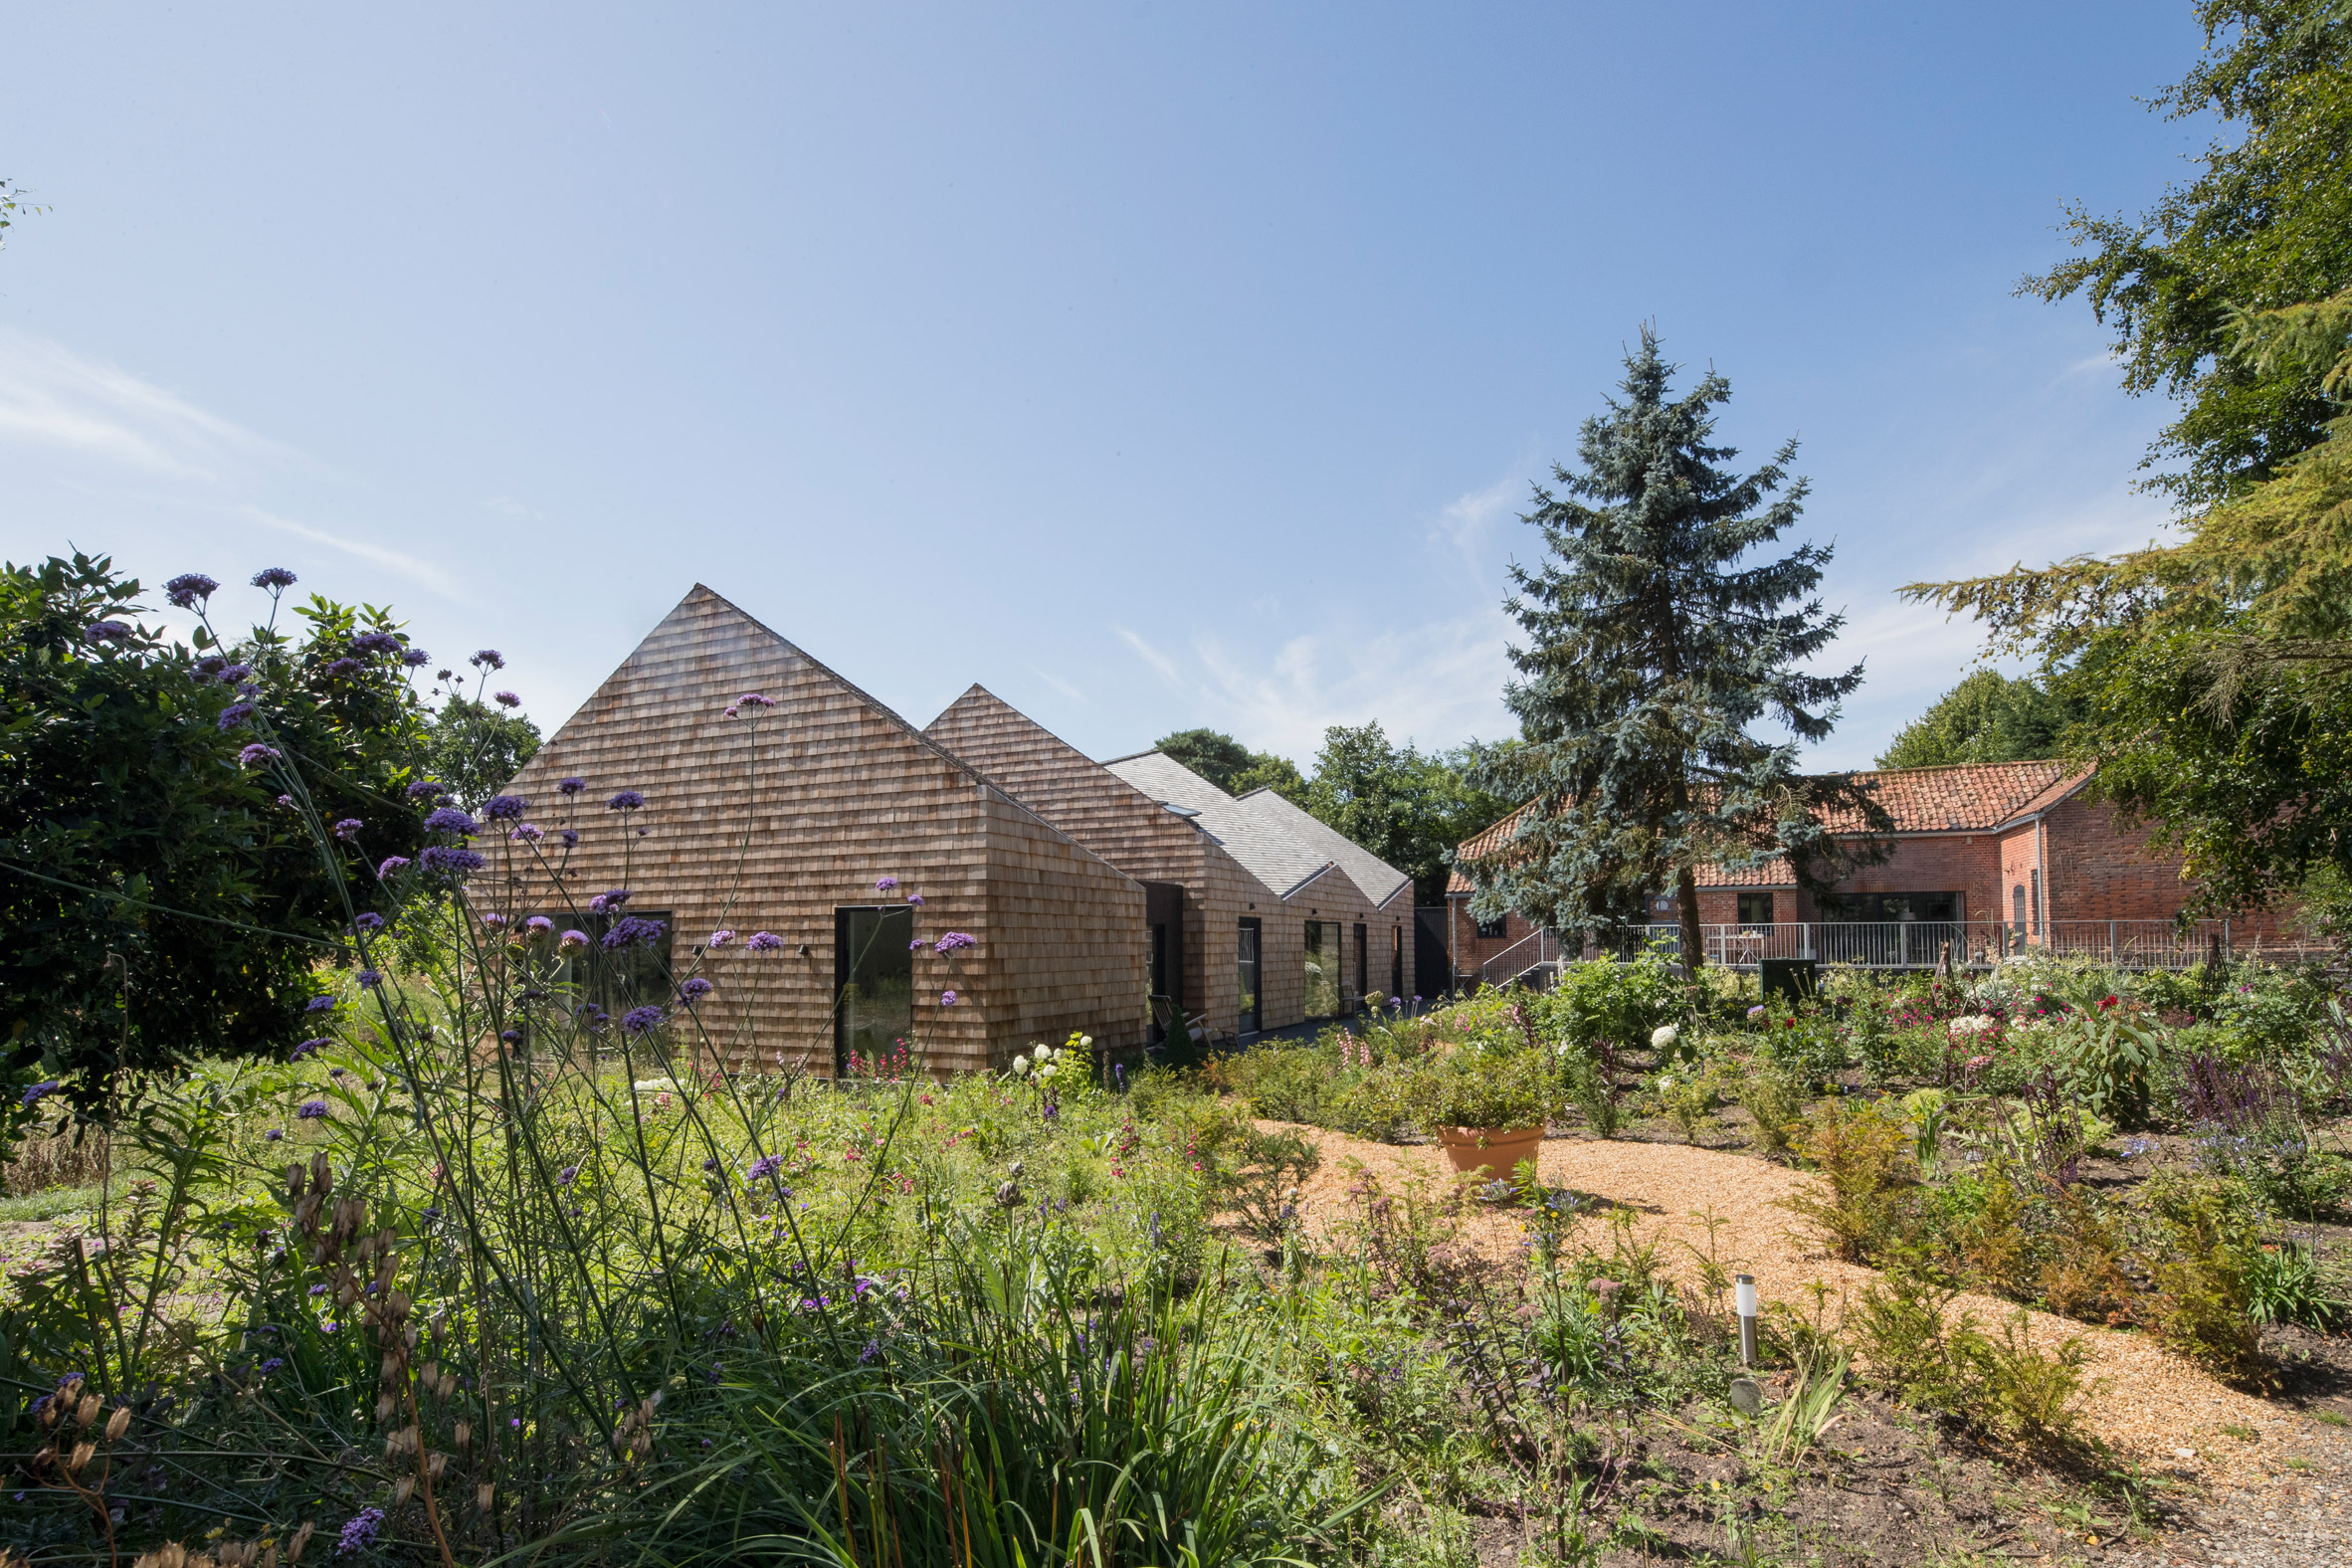 Old Suffolk barn transformed into countryside bed and breakfast by Blee Halligan Architects